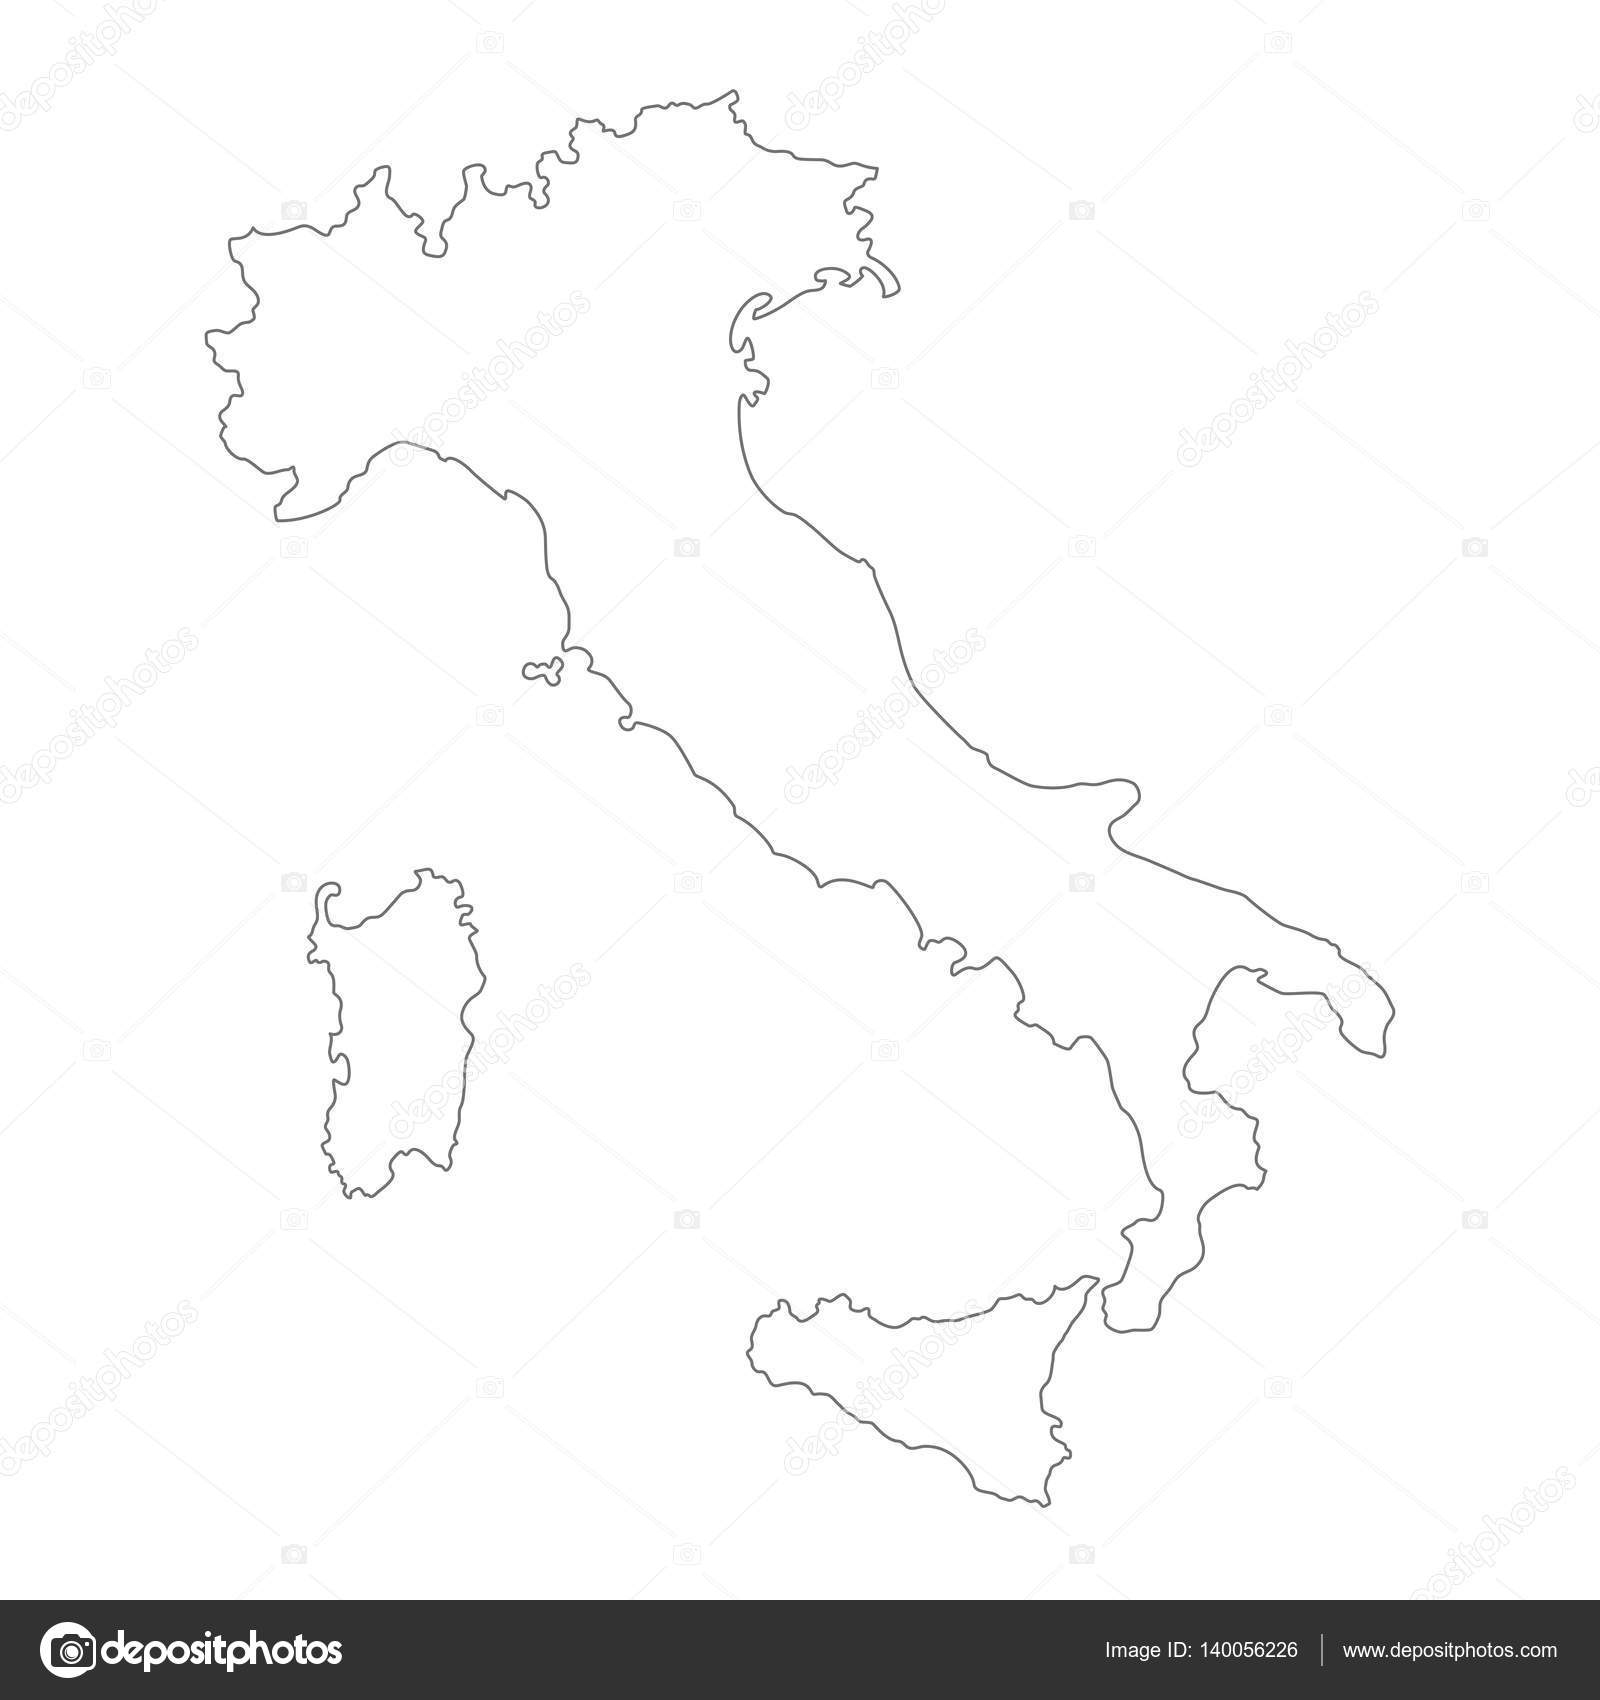 Map Of Italy Outline.Outline Vector Italy Map Stock Vector C Pingebat 140056226